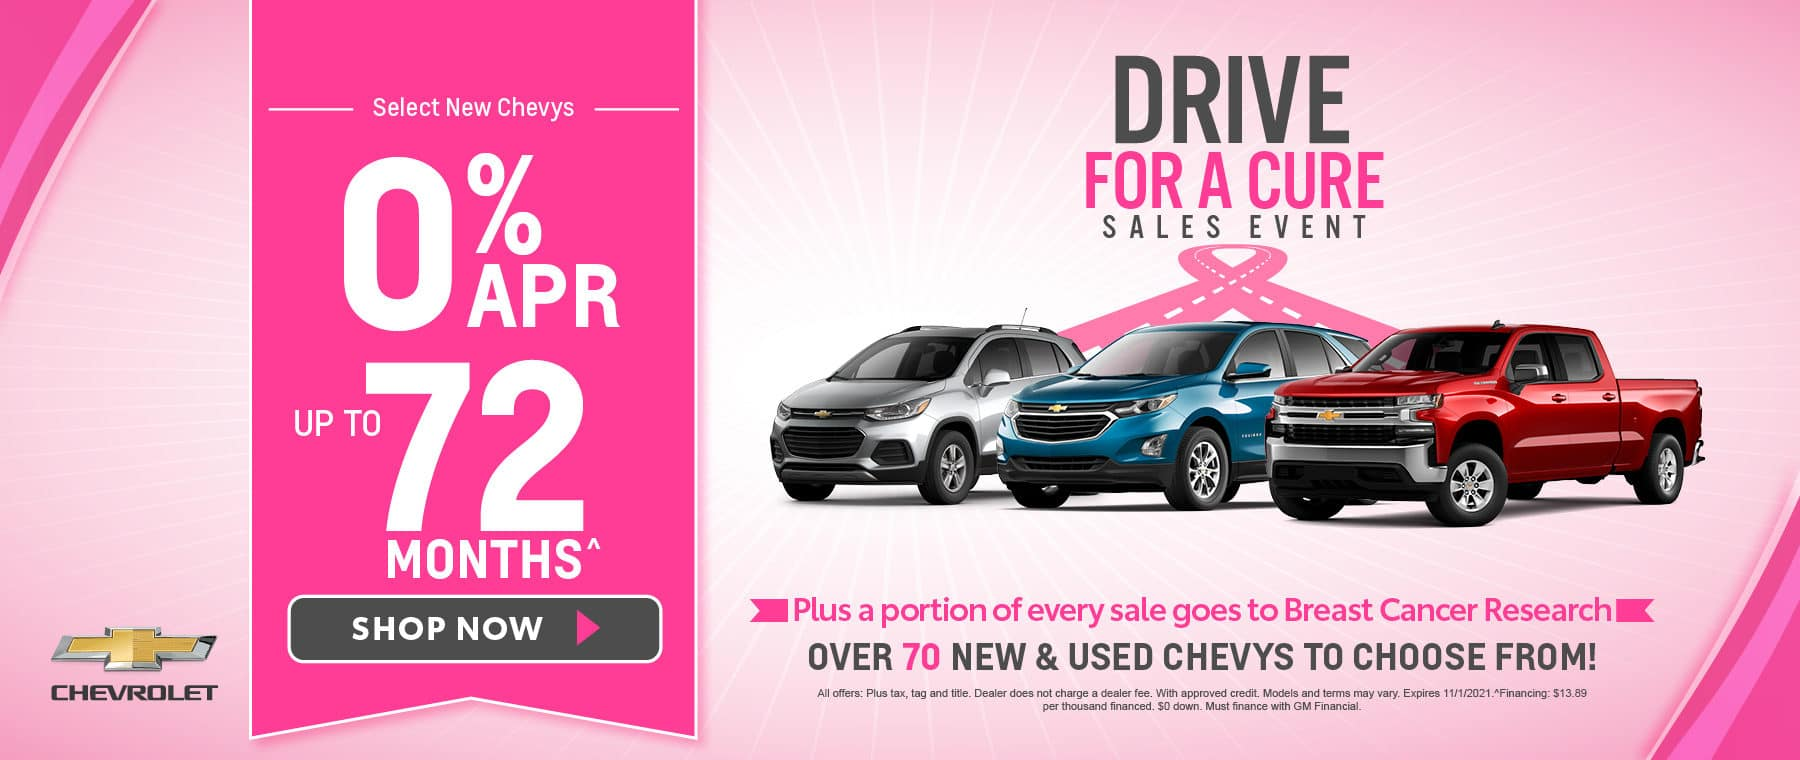 Select New Chevys 0% APR